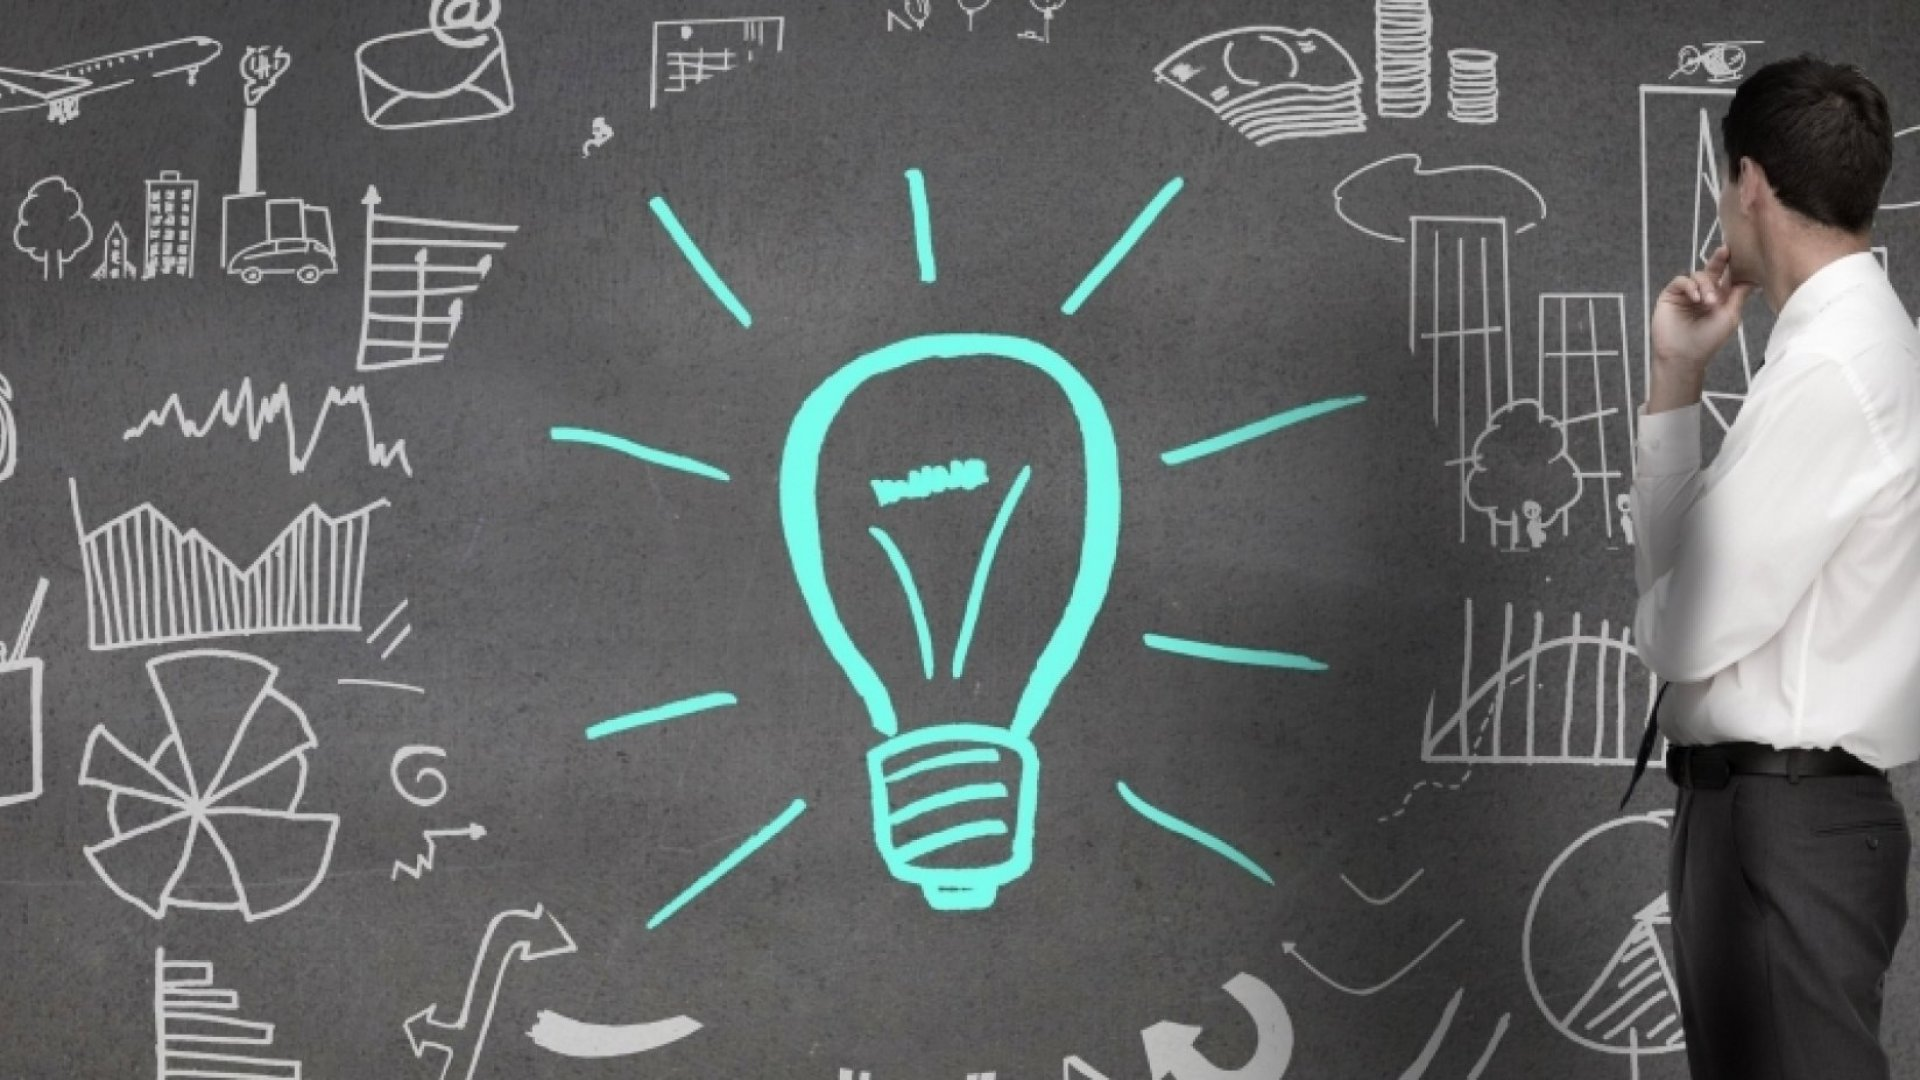 5 Amazing Ways to Be an Innovator